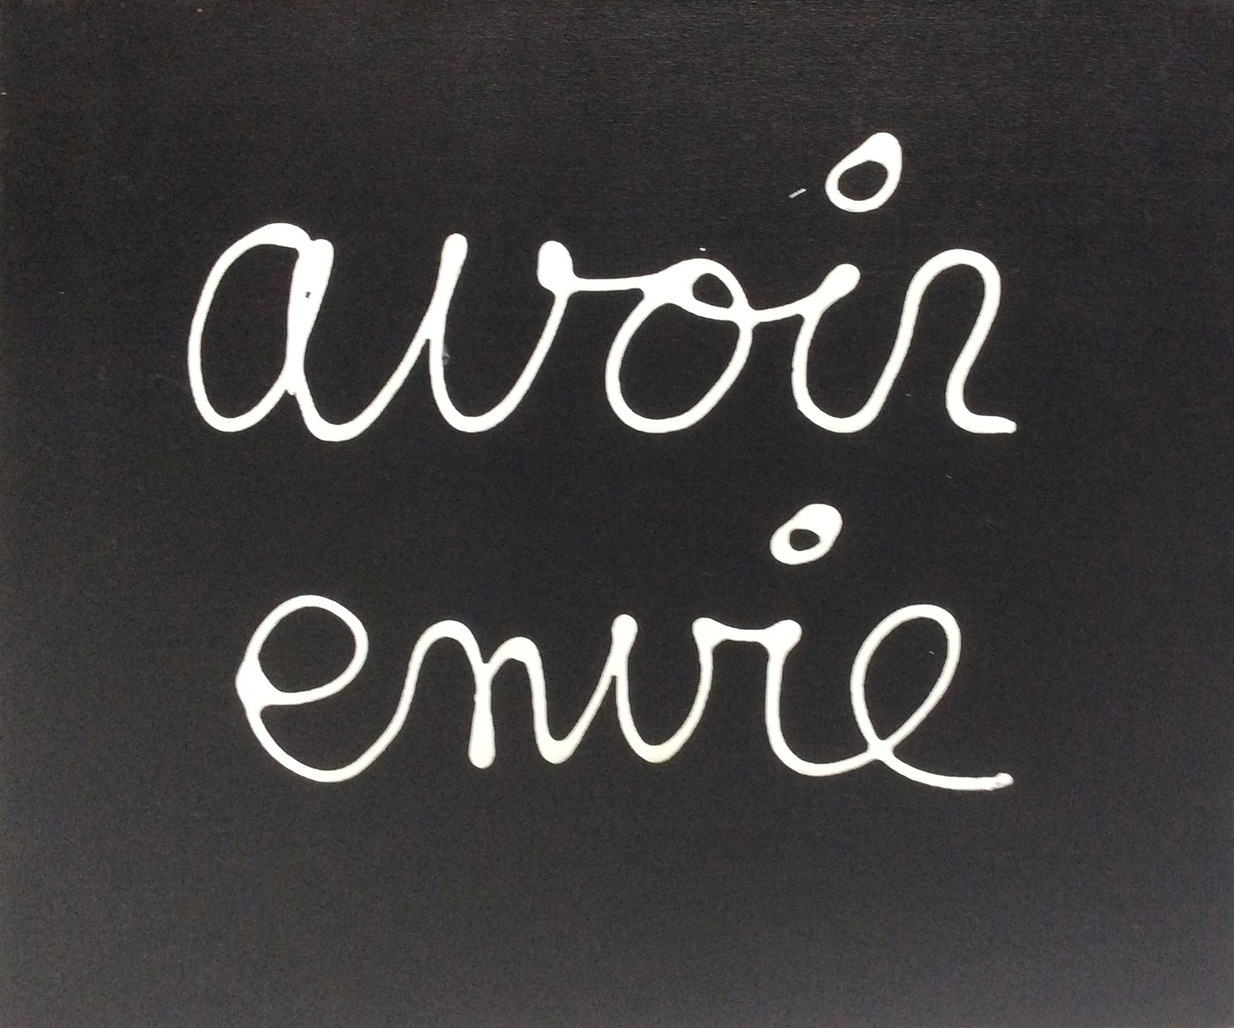 Avoir Envie by Vautier Ben